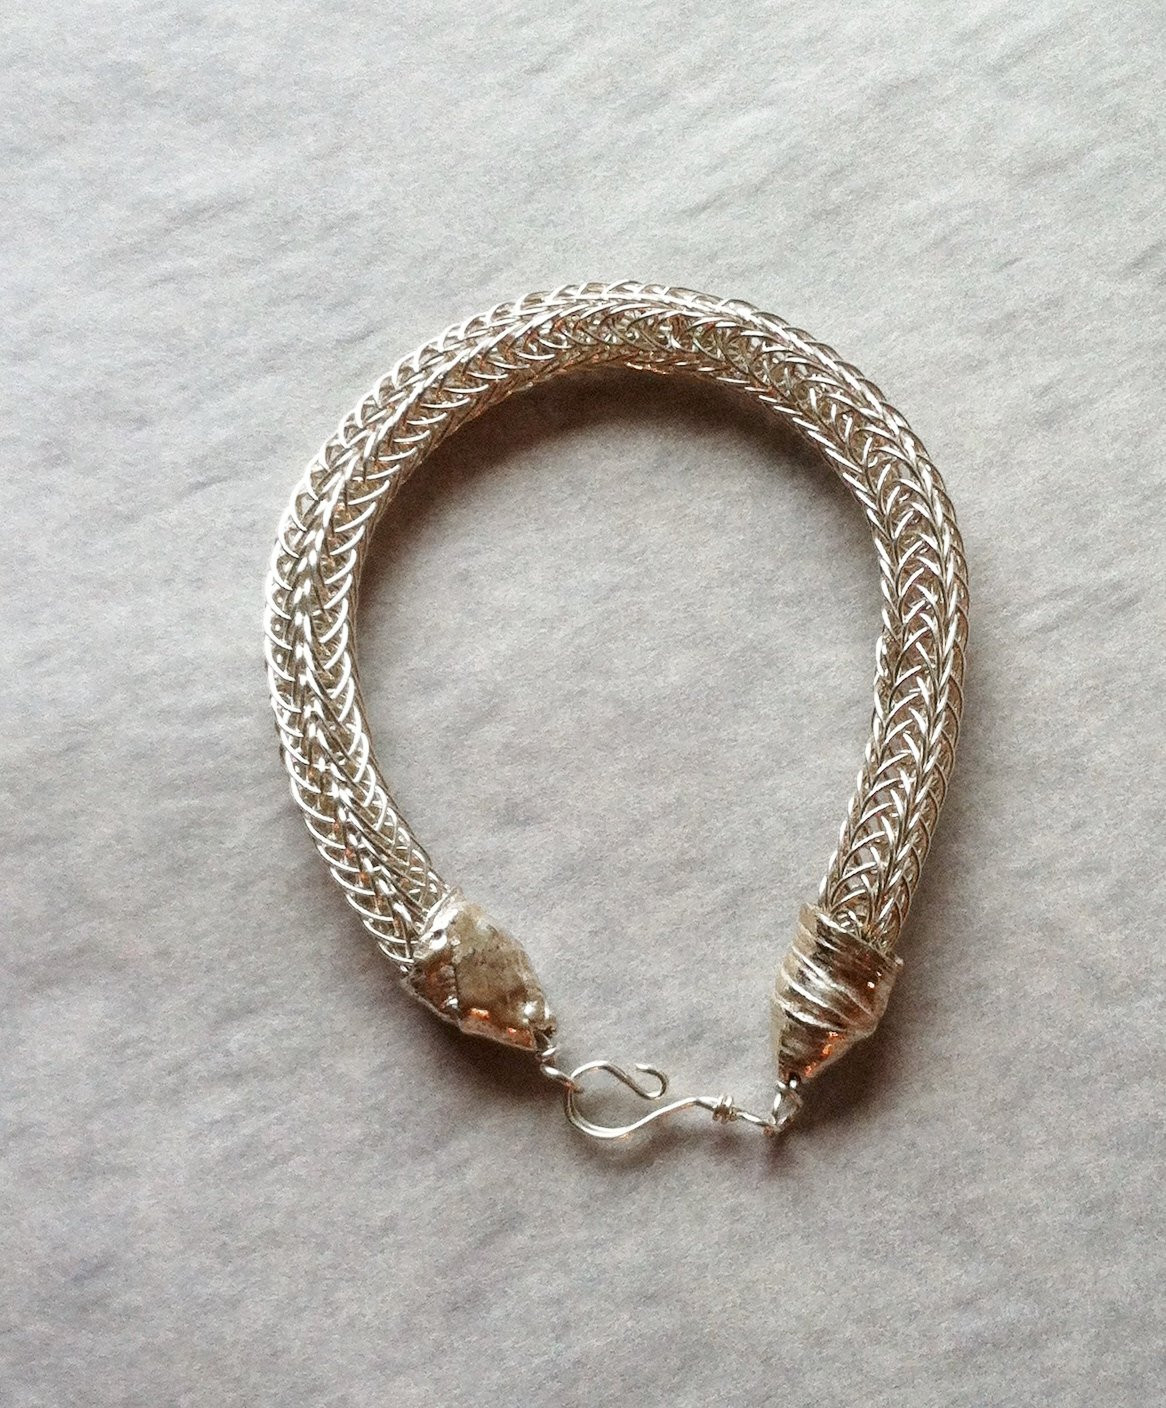 Silver Viking Knit Bracelet Viking Jewelry Elegant by Meliciap